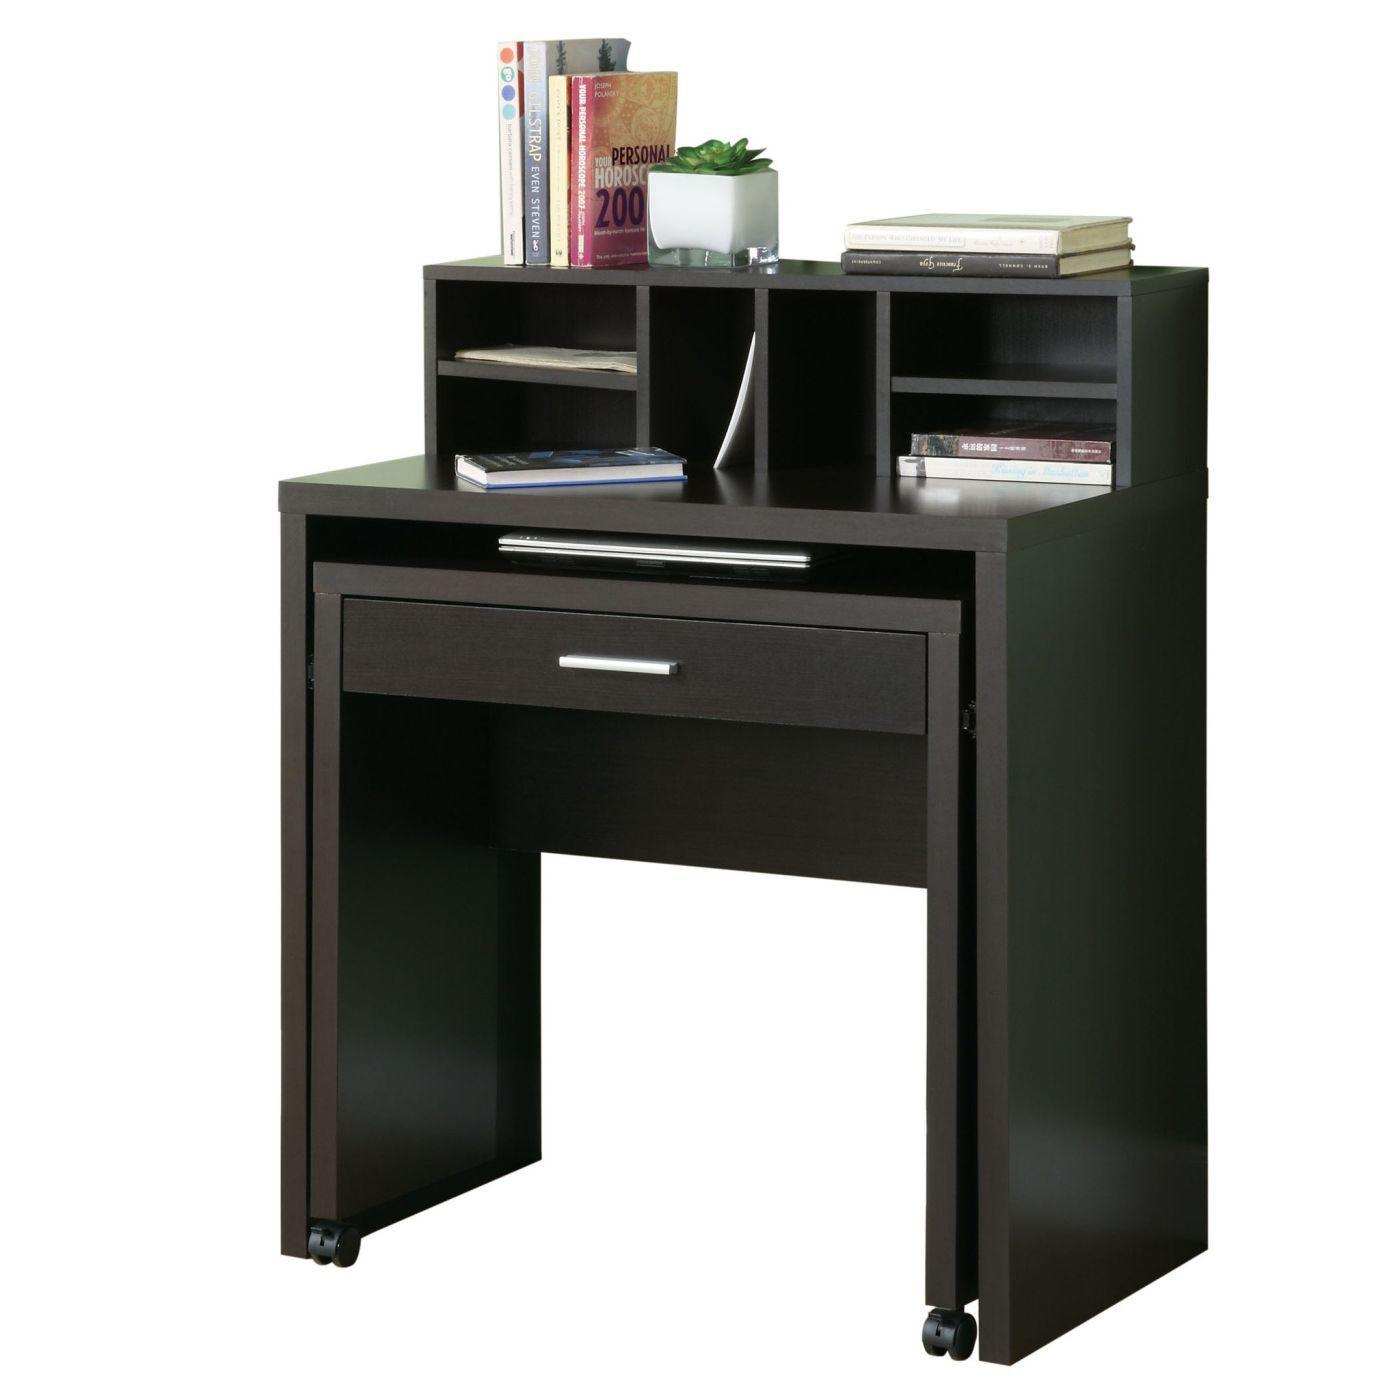 Image of Cappuccino Hollow-Core Spacesaver Desk With Open Storage